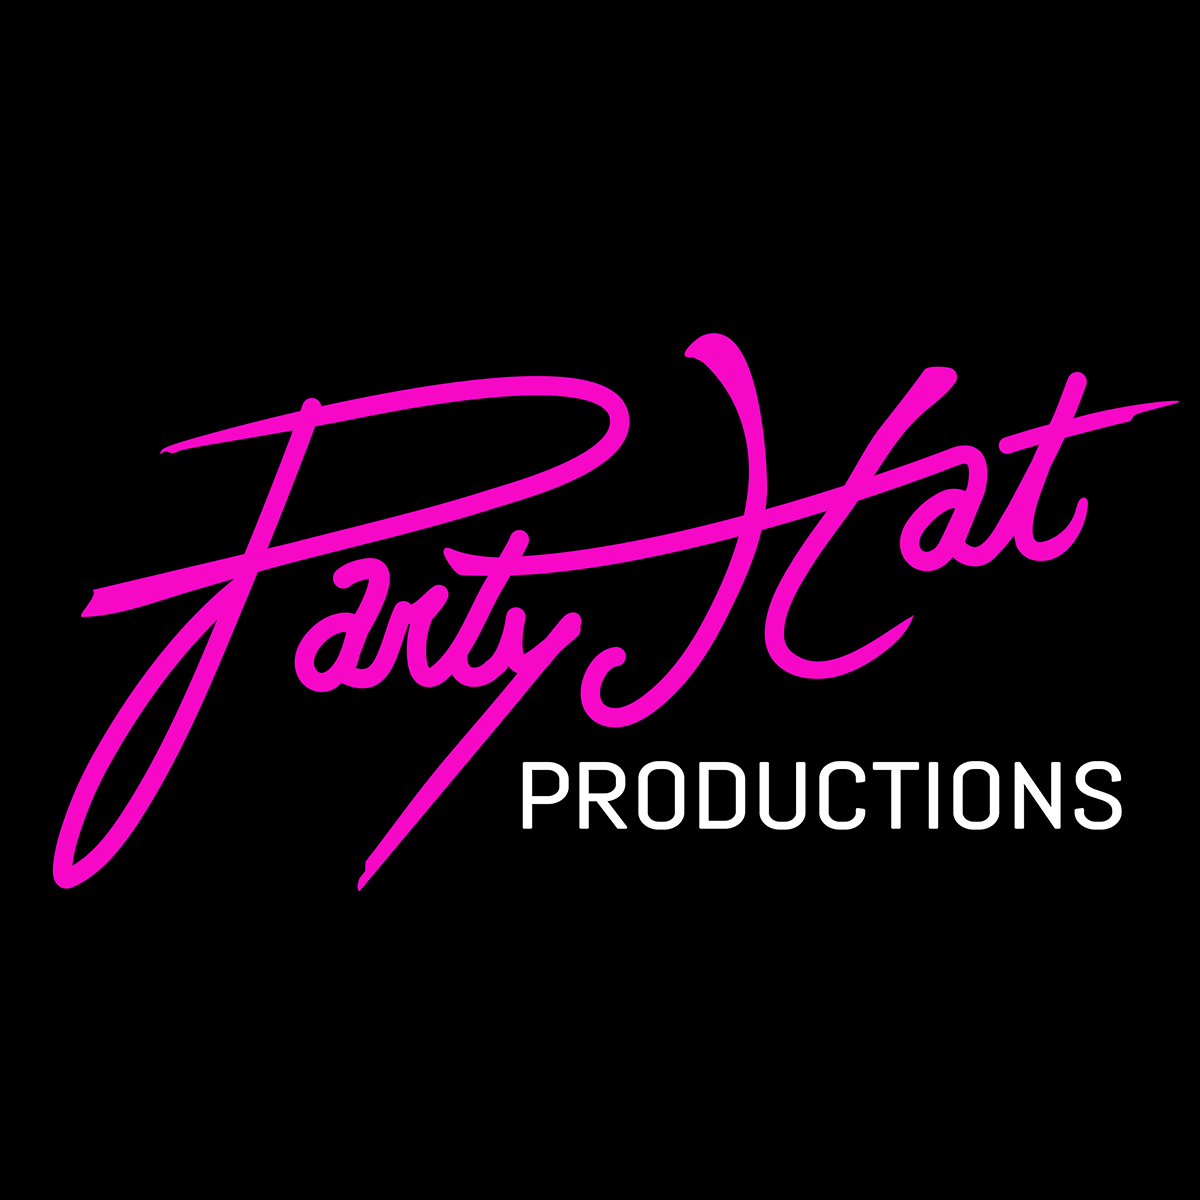 PartyHat Productions